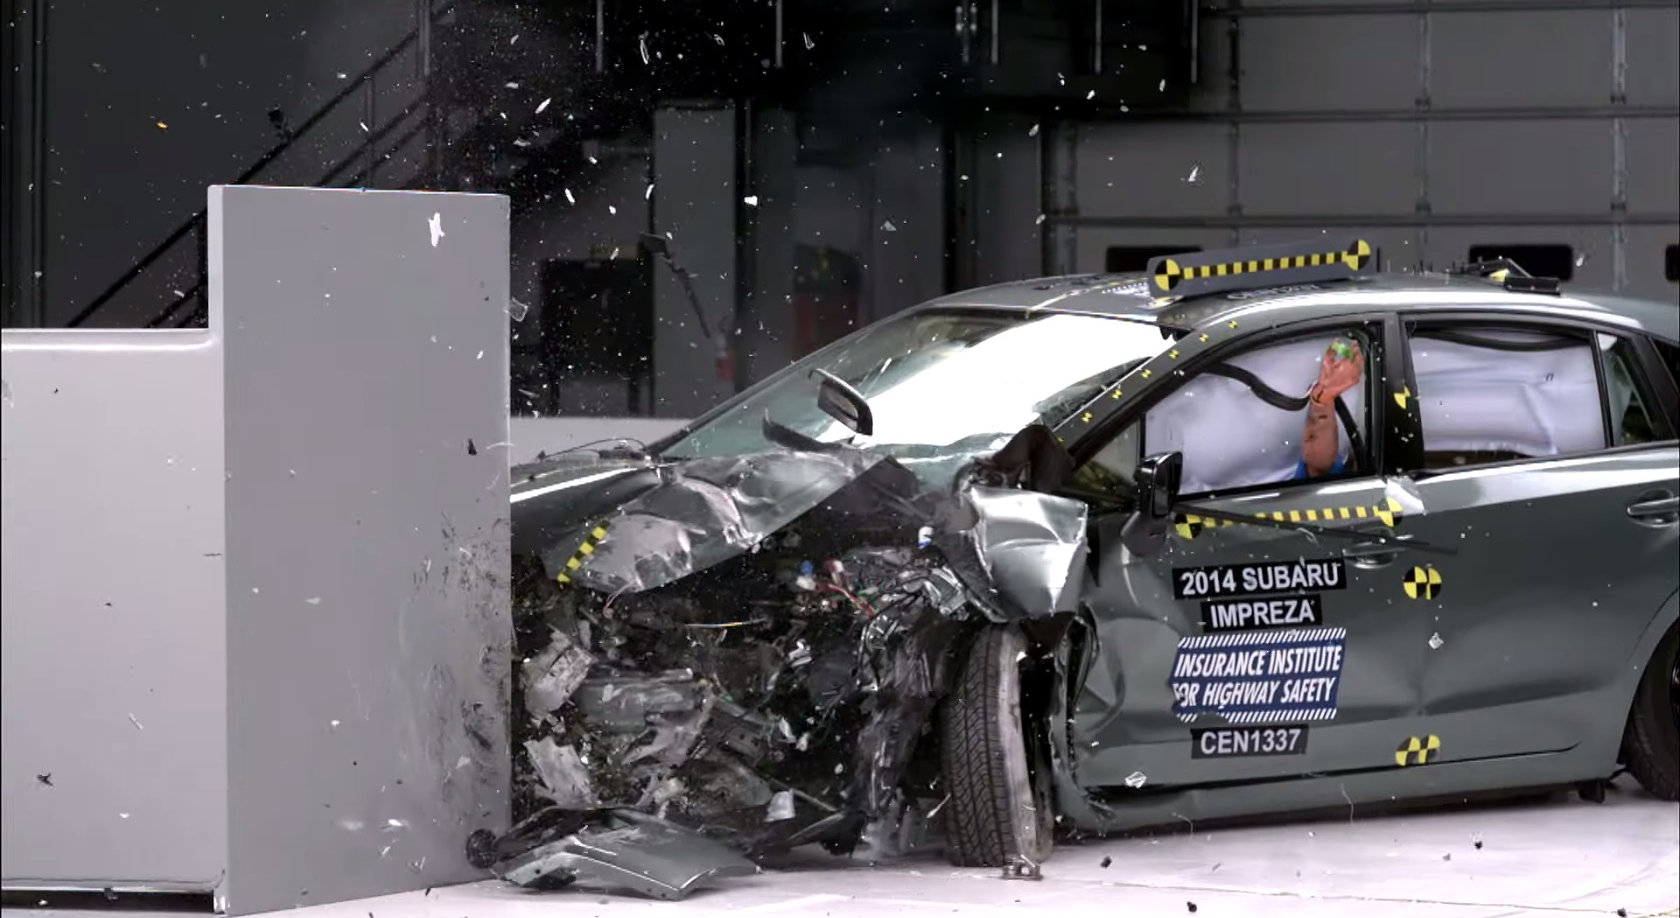 2015 Subaru Impreza Earns Top Safety Pick Rating From the IIHS